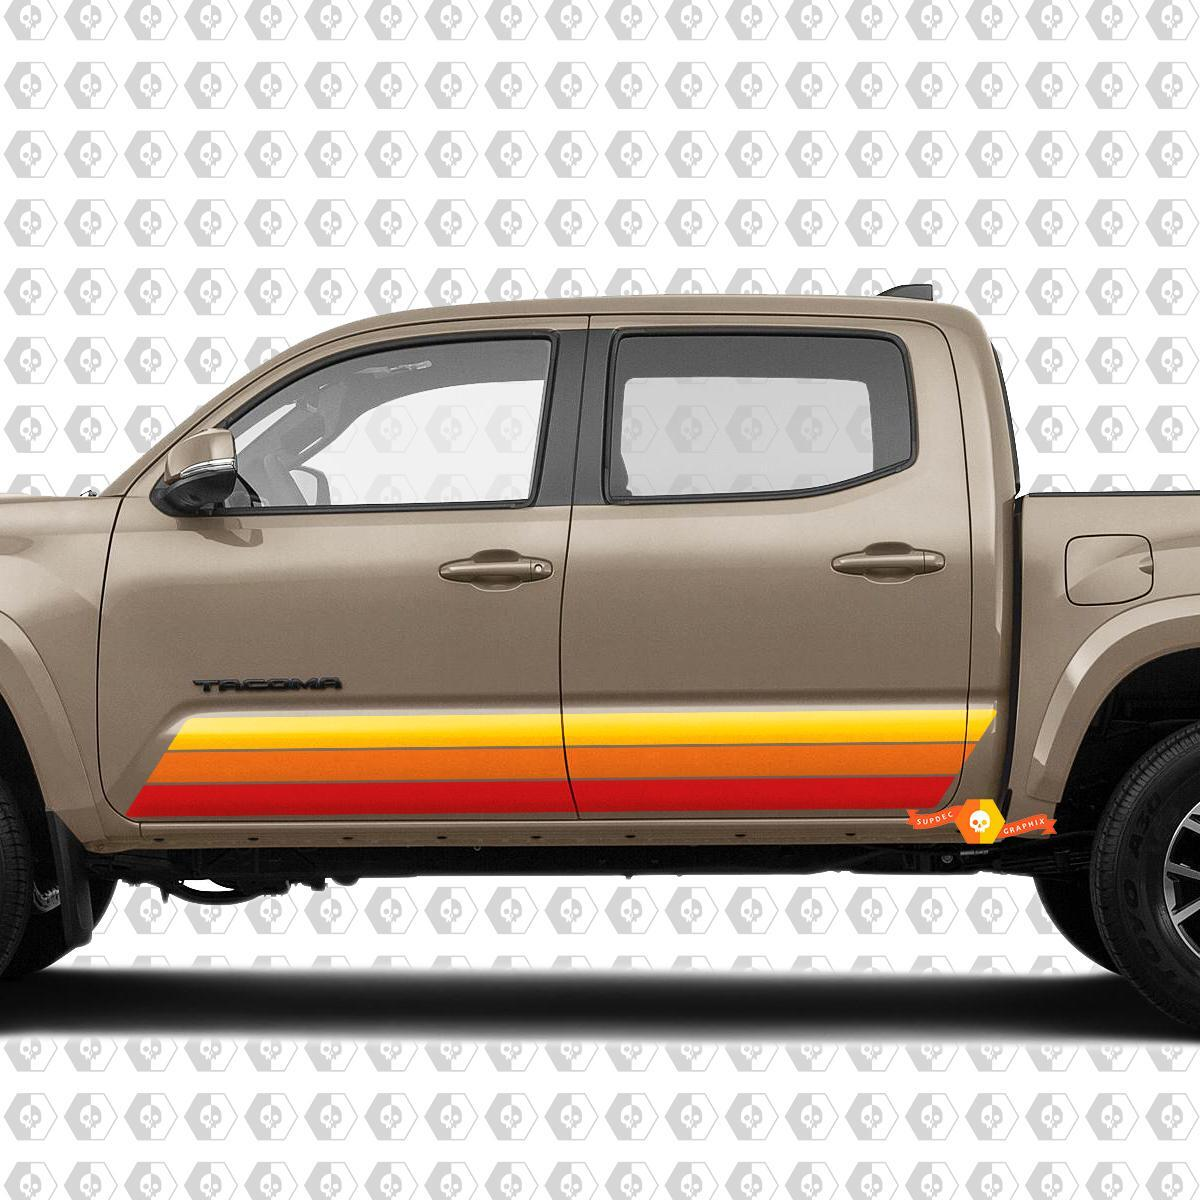 Toyota Tacoma TRD Sport PRO Side Retro Vintage Rocker Panel Stripes Decal Graphics 2016 - 2020 new